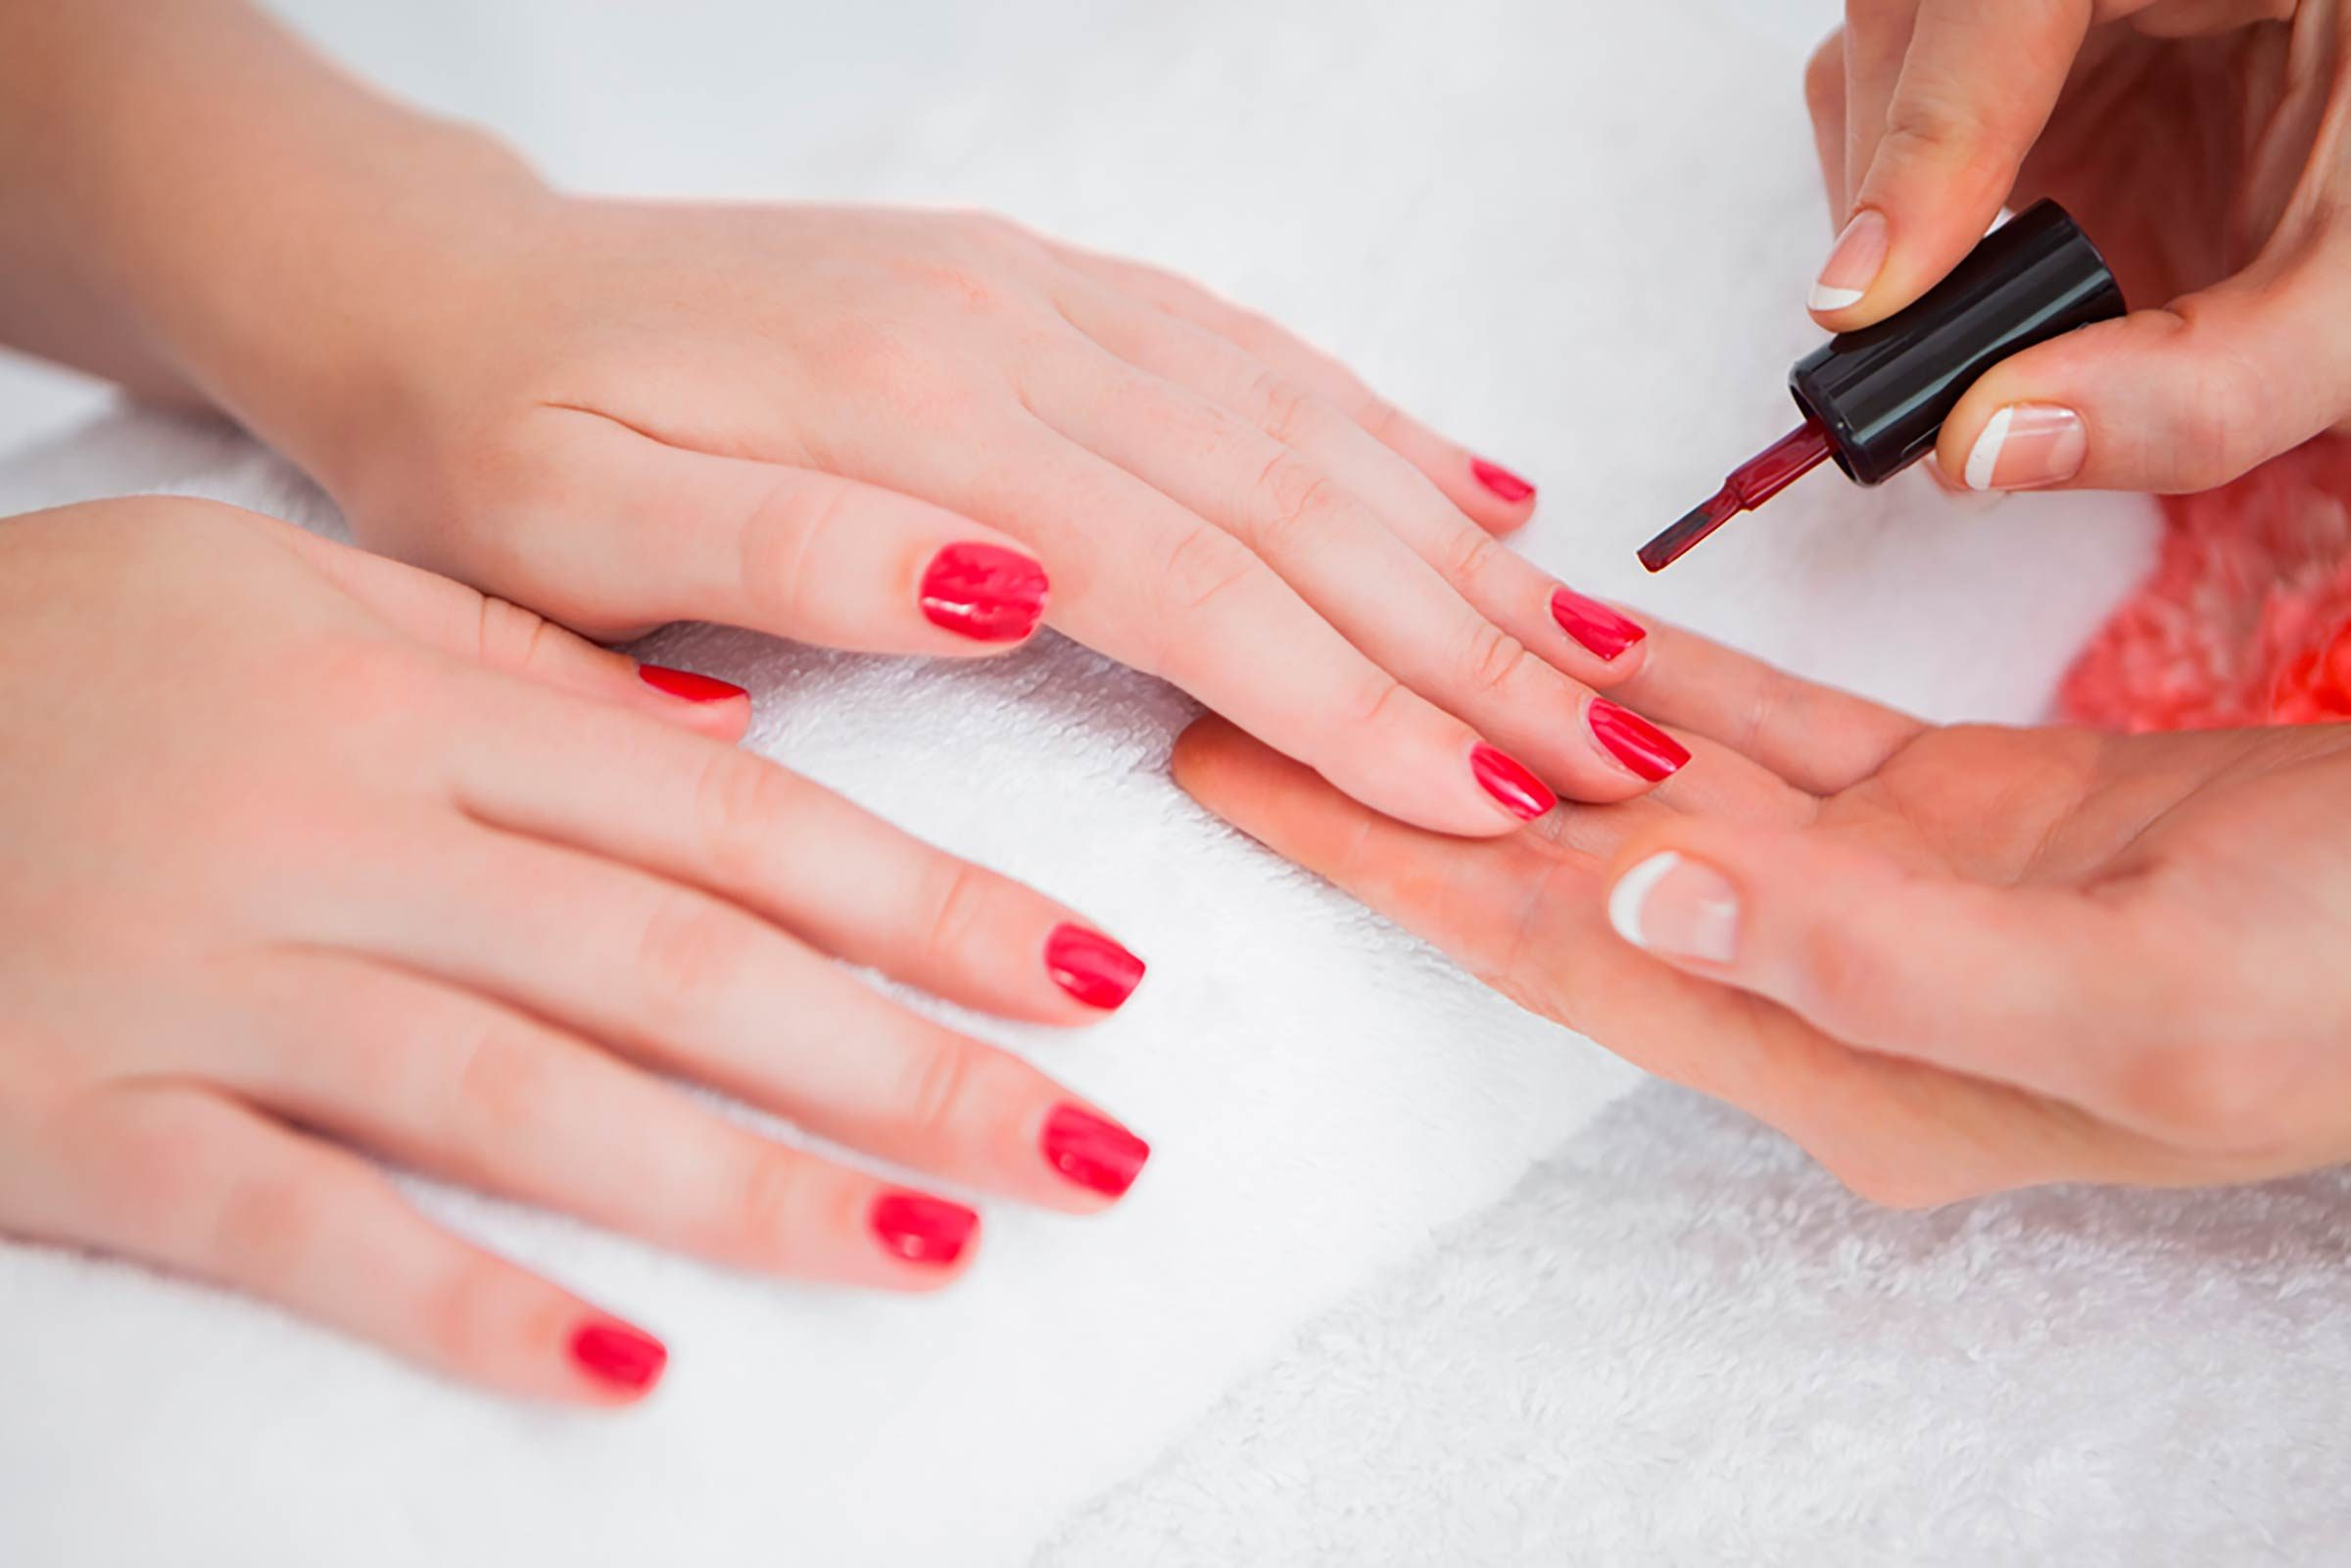 Nail Salon Methyl Methacrylate In Nail Salons What You Need To Know